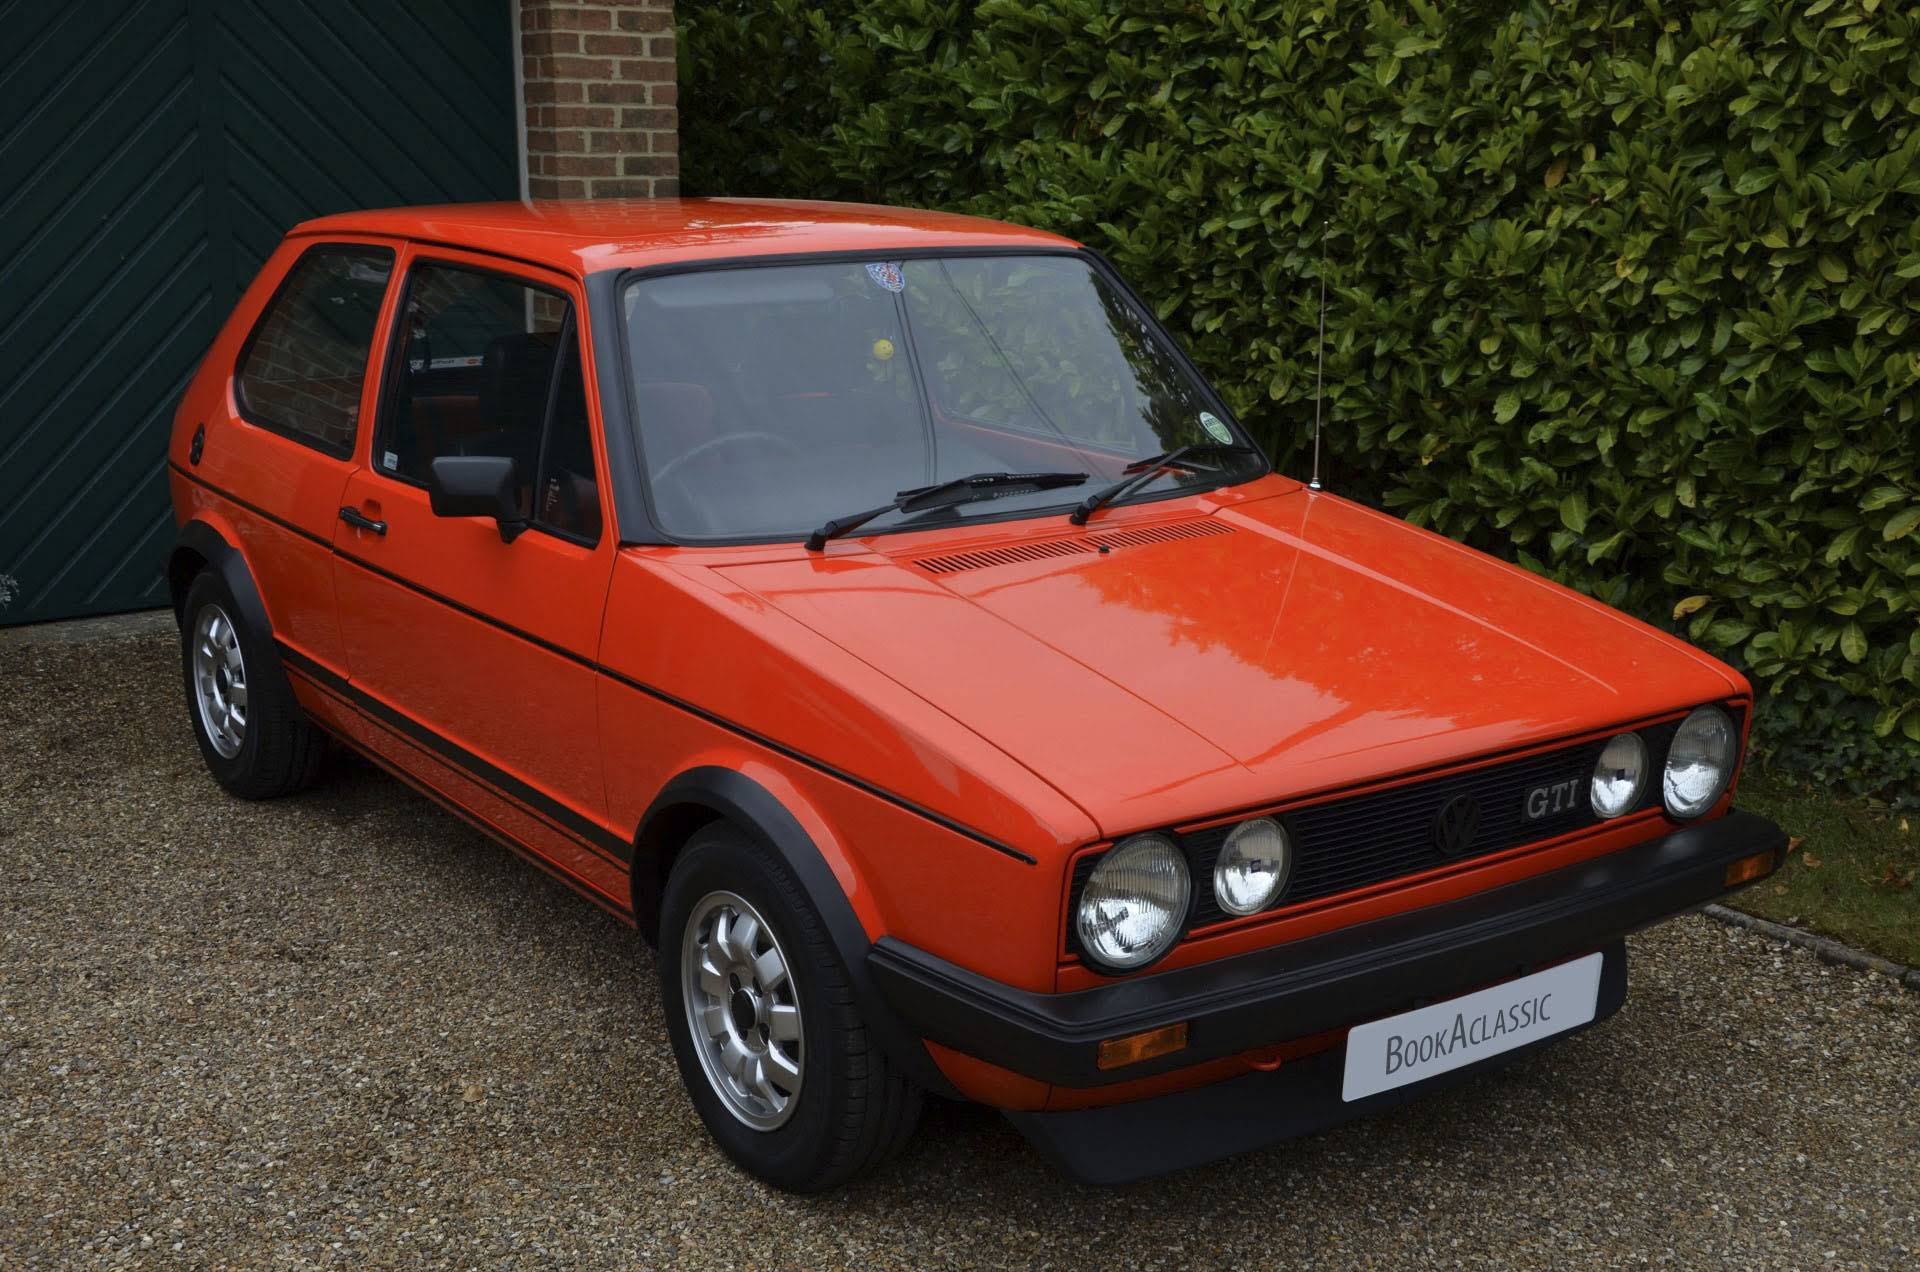 Volkswagen Golf Gti Mark 1 Bookaclassic